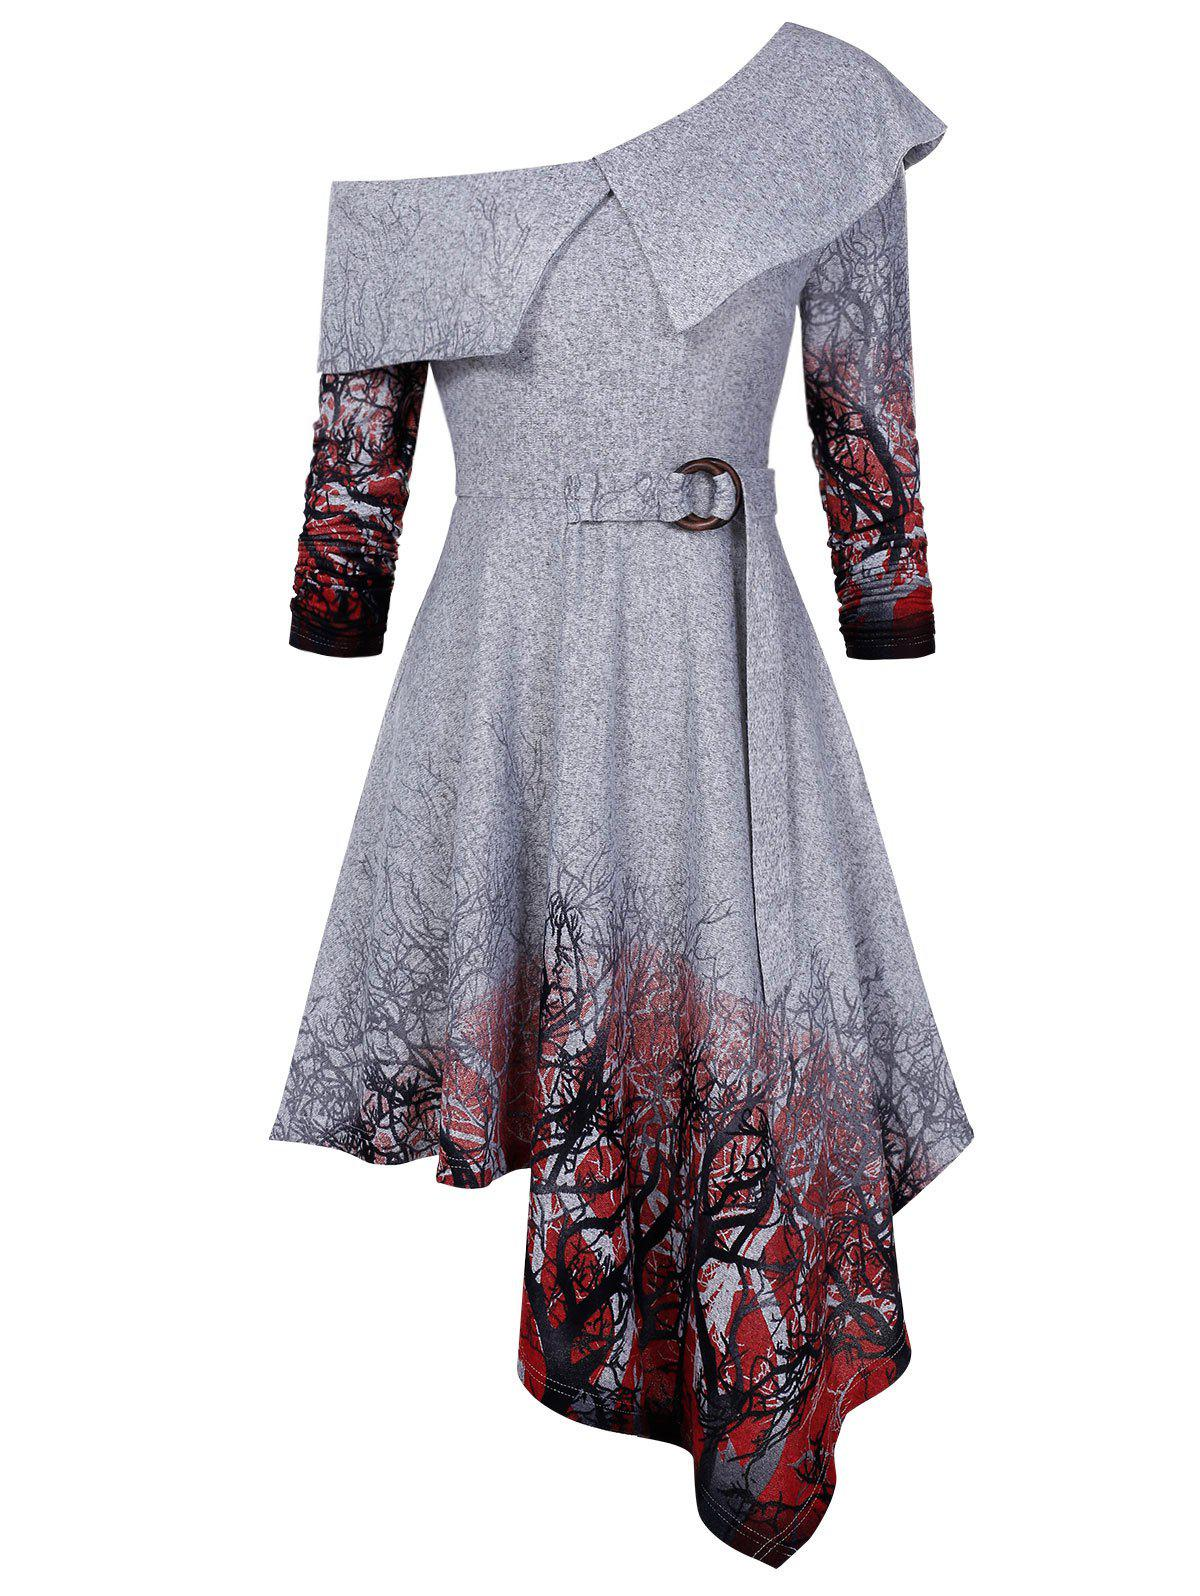 Long Sleeve Tree Printed High Waist Dress - GRAY GOOSE L